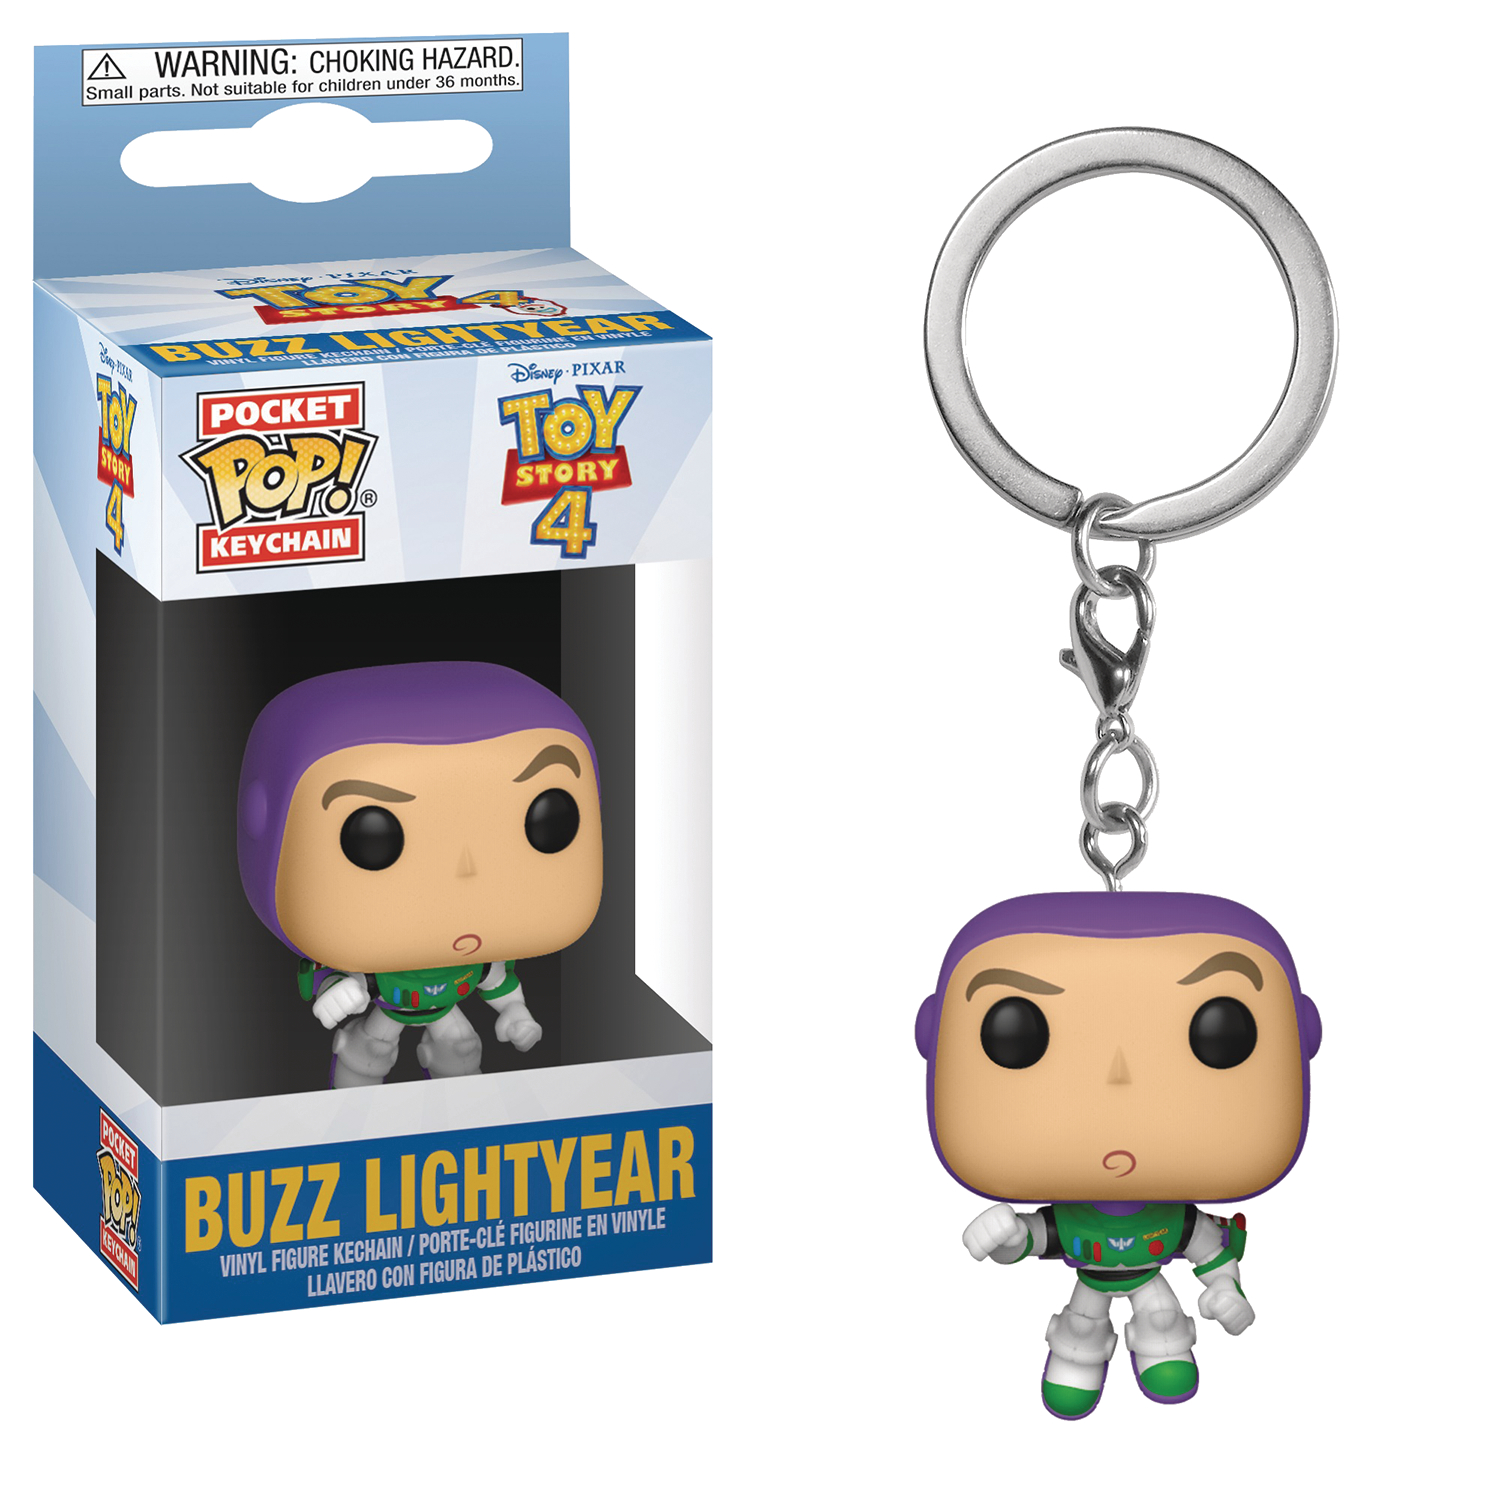 POCKET POP TOY STORY 4 BUZZ LIGHTYEAR KEYCHAIN